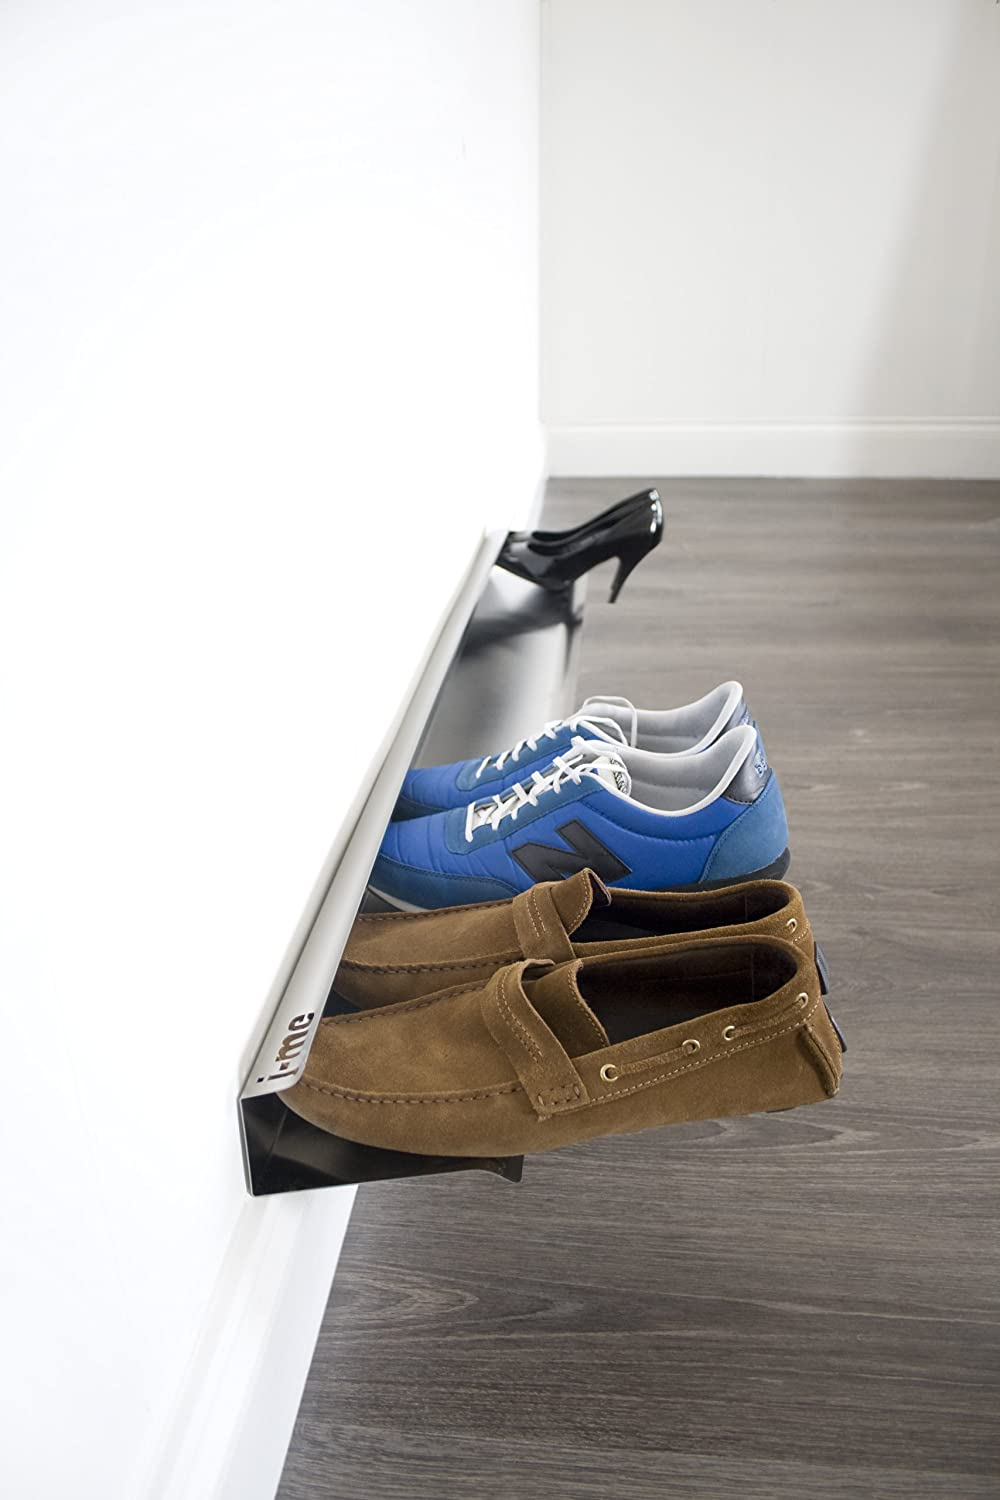 Best Selling Wall Mounted Shoe Racks For Garage Top